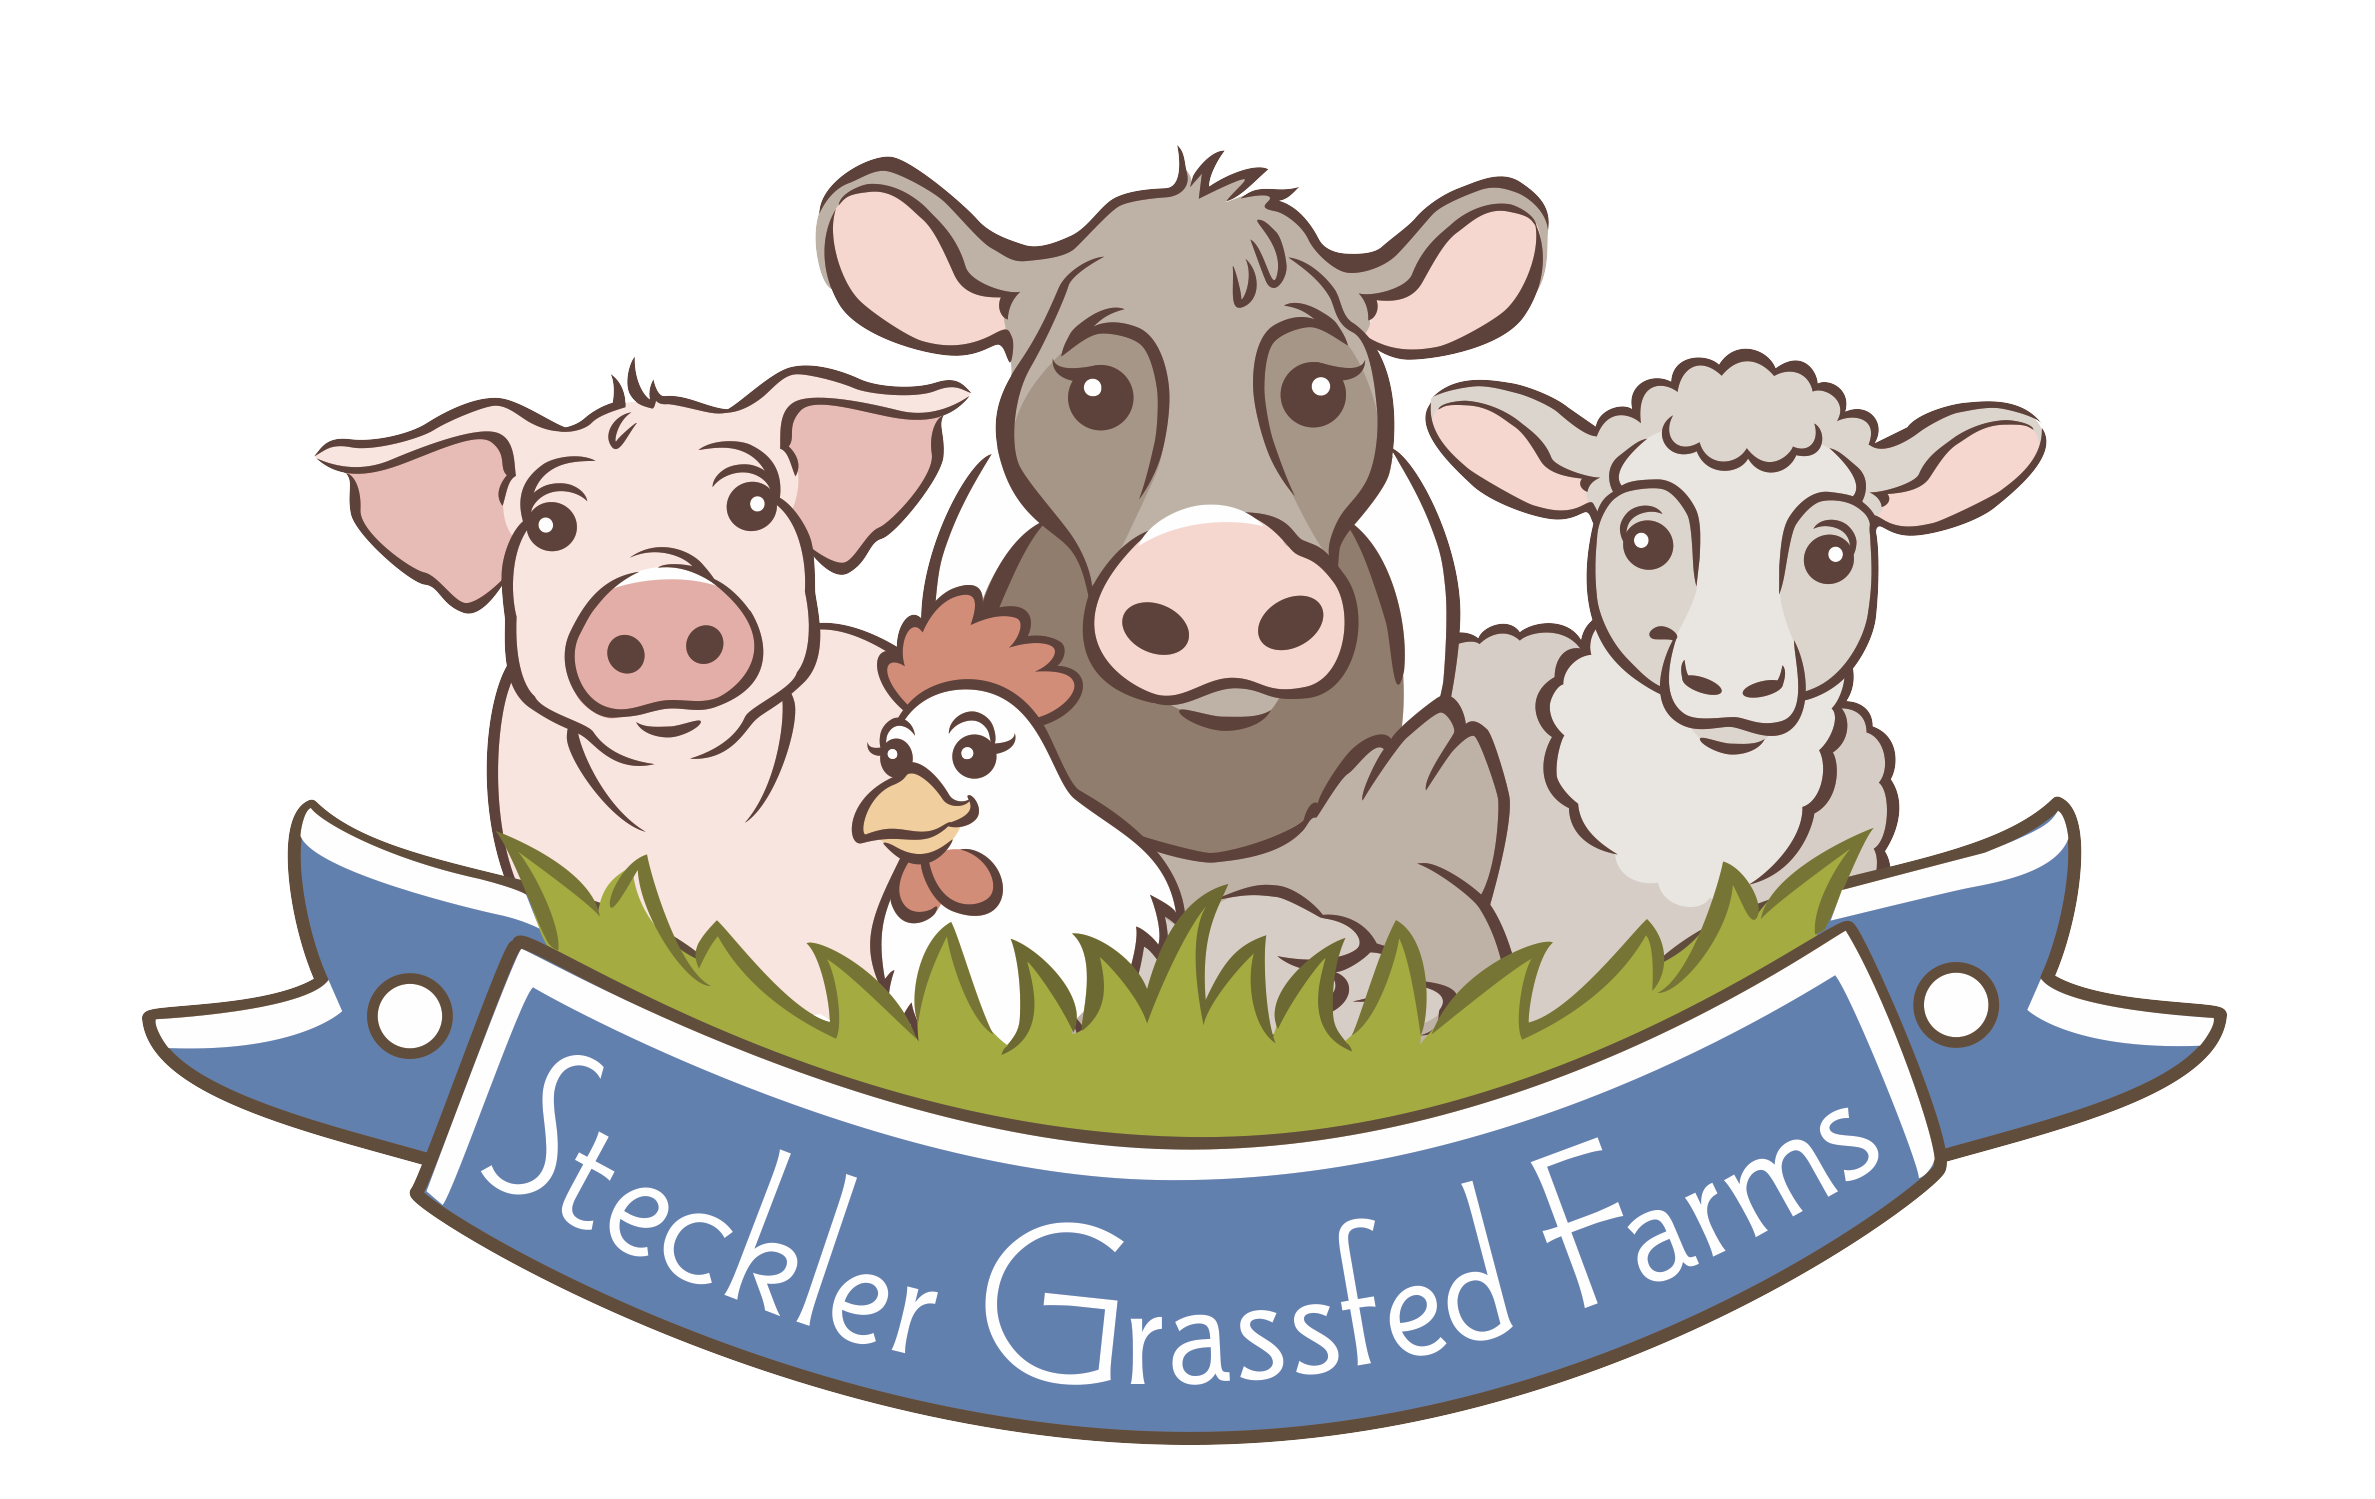 Website Steckler Grassfed Farms Logo Know farmer